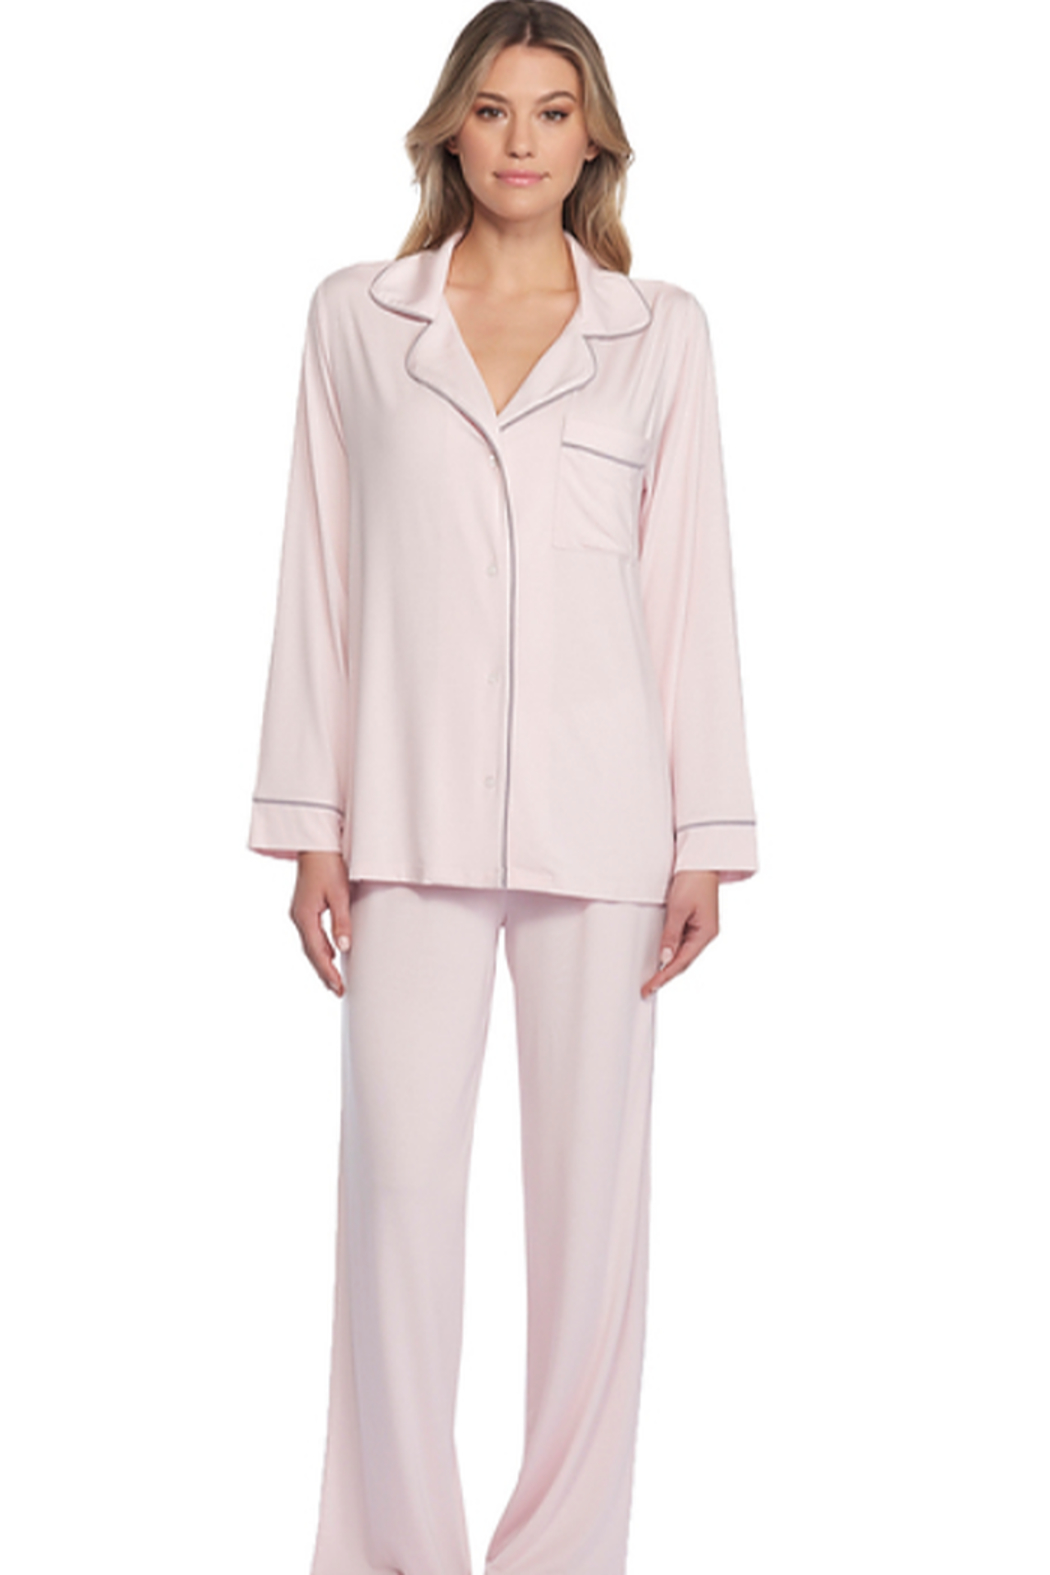 The Birds Nest LUXE MILK JERSEY PIPED PAJAMA SET - PINK (LARGE) - Front Full Image